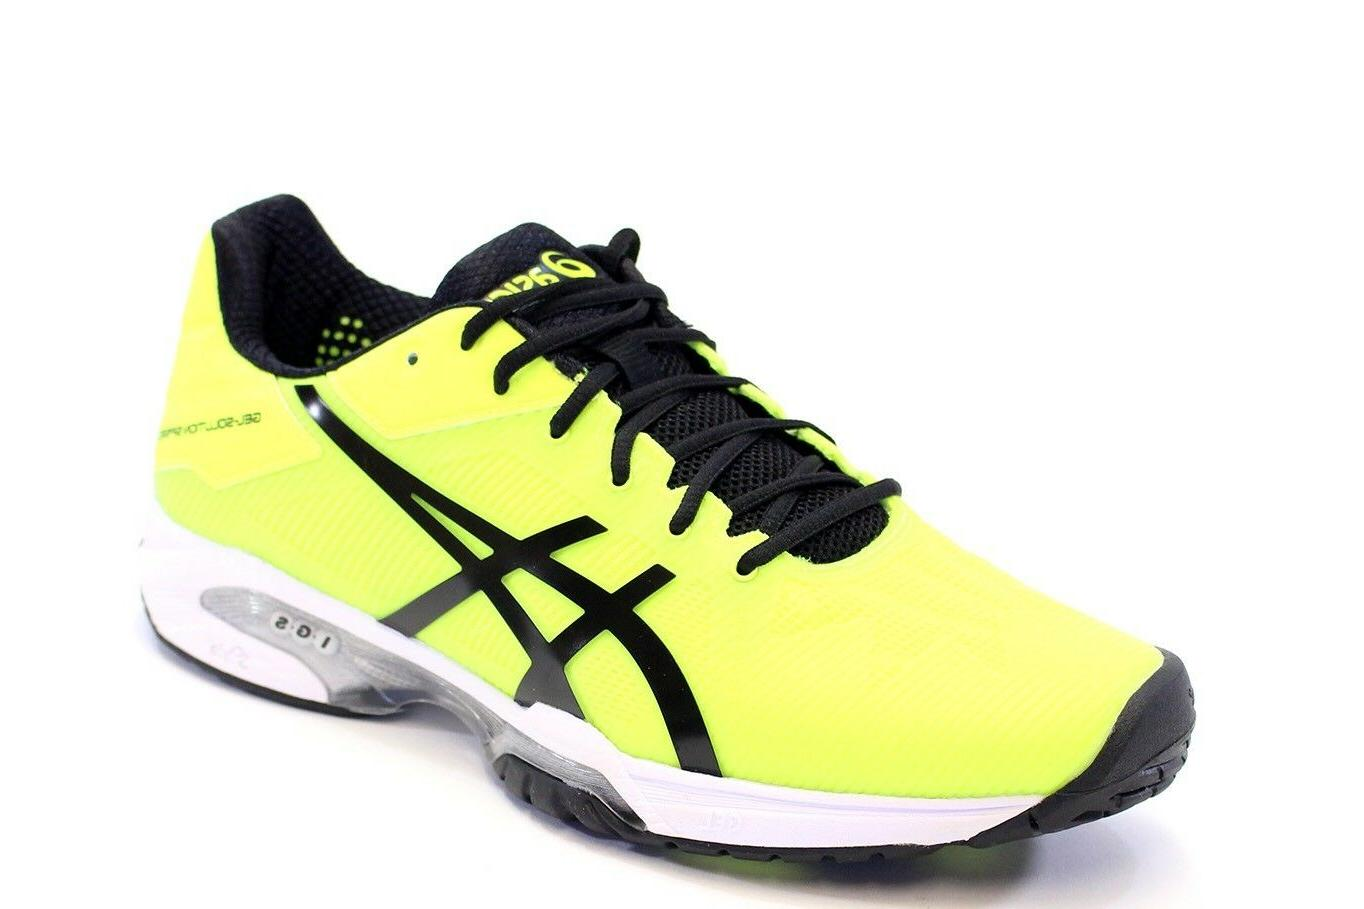 NEW MEN'S ASICS SOLUTION SPEED 3  TENNIS SHOES. SIZES